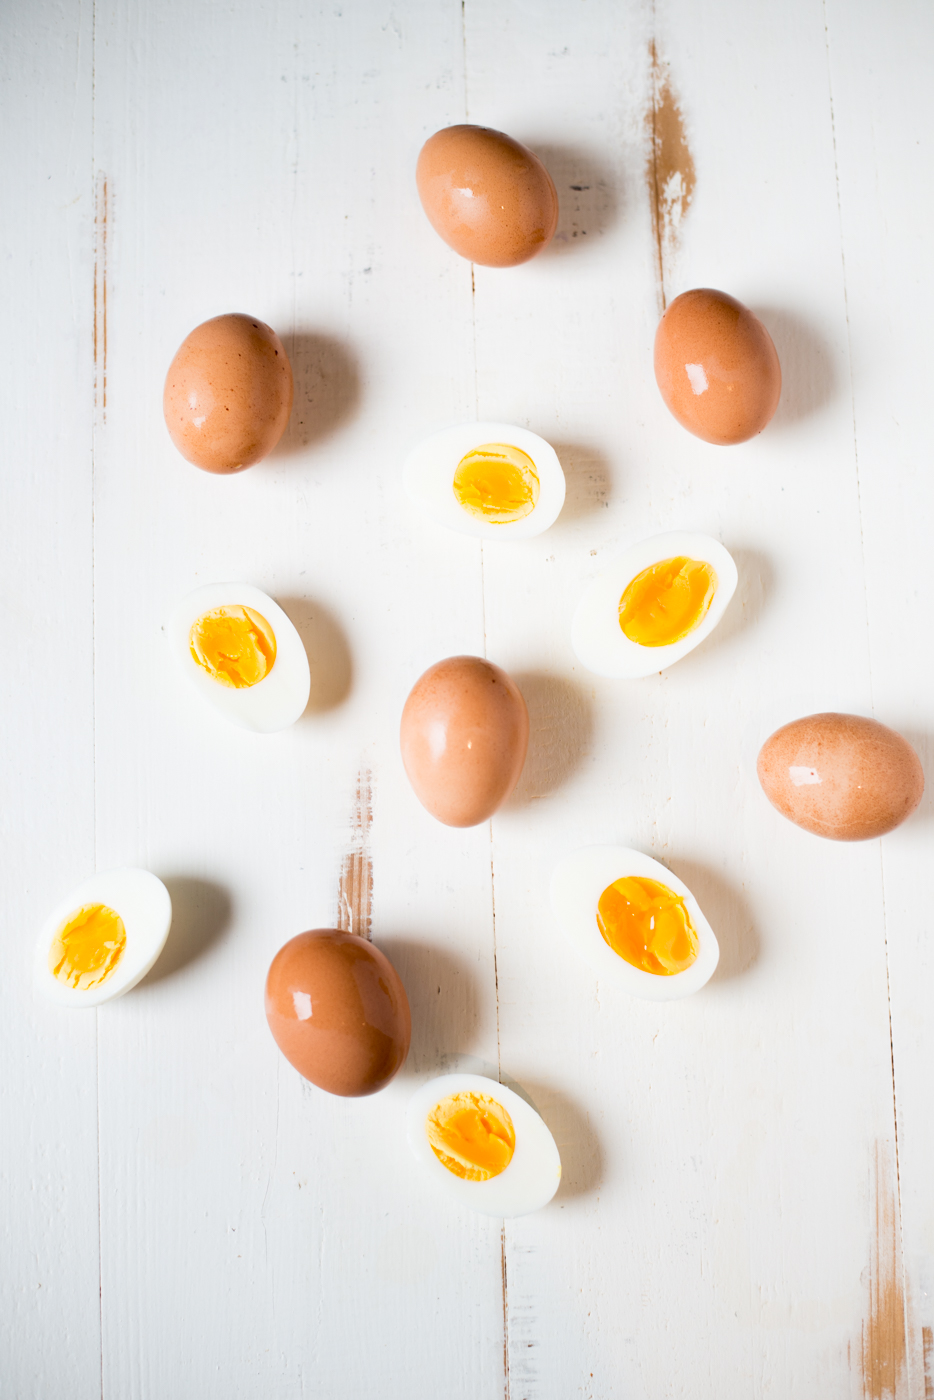 One-Minute Instant Pot Hard Boiled Eggs is the simplest, best method to achieve perfect hard boiled eggs in the Instant Pot, every time. #realfoodwholelife #realfoodwholeliferecipe #glutenfree #glutenfreerecipe #dairyfree #dairyfreerecipe #healthy #healthyrecipe #easyrecipe #quickrecipe #cleaneating #hardboiledeggs #instantpot #instantpotrecipe #mealprep